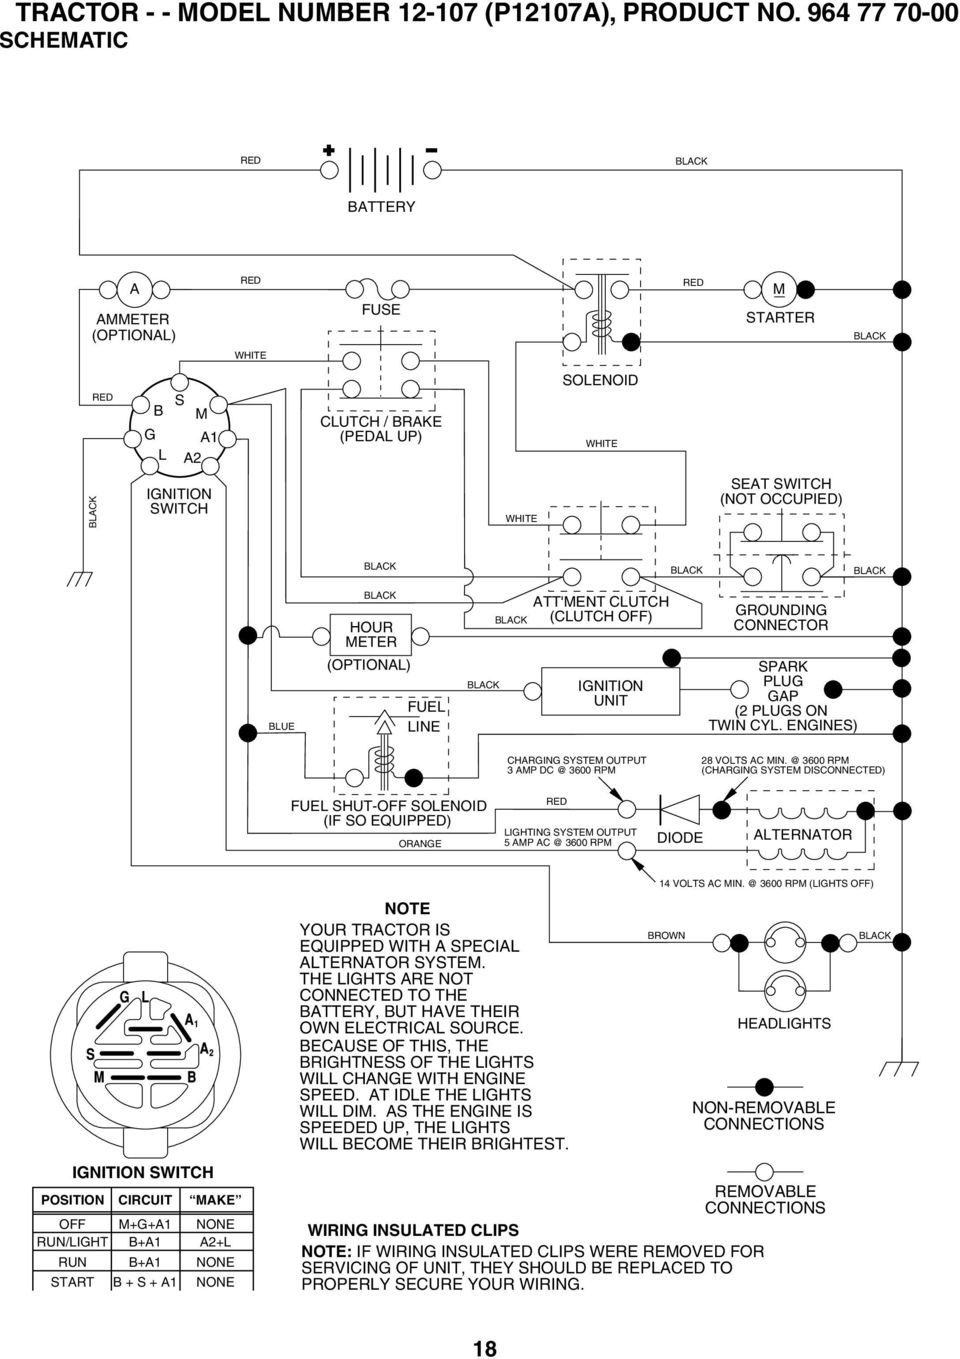 Illustrated Parts Breakdown Partner 120 Hp 42 Mower Deck Lawn Troy Built Solenoid 12 Volt Wiring Diagram 00 Rpm Charging System Disconnected Fuel Shut Off If So